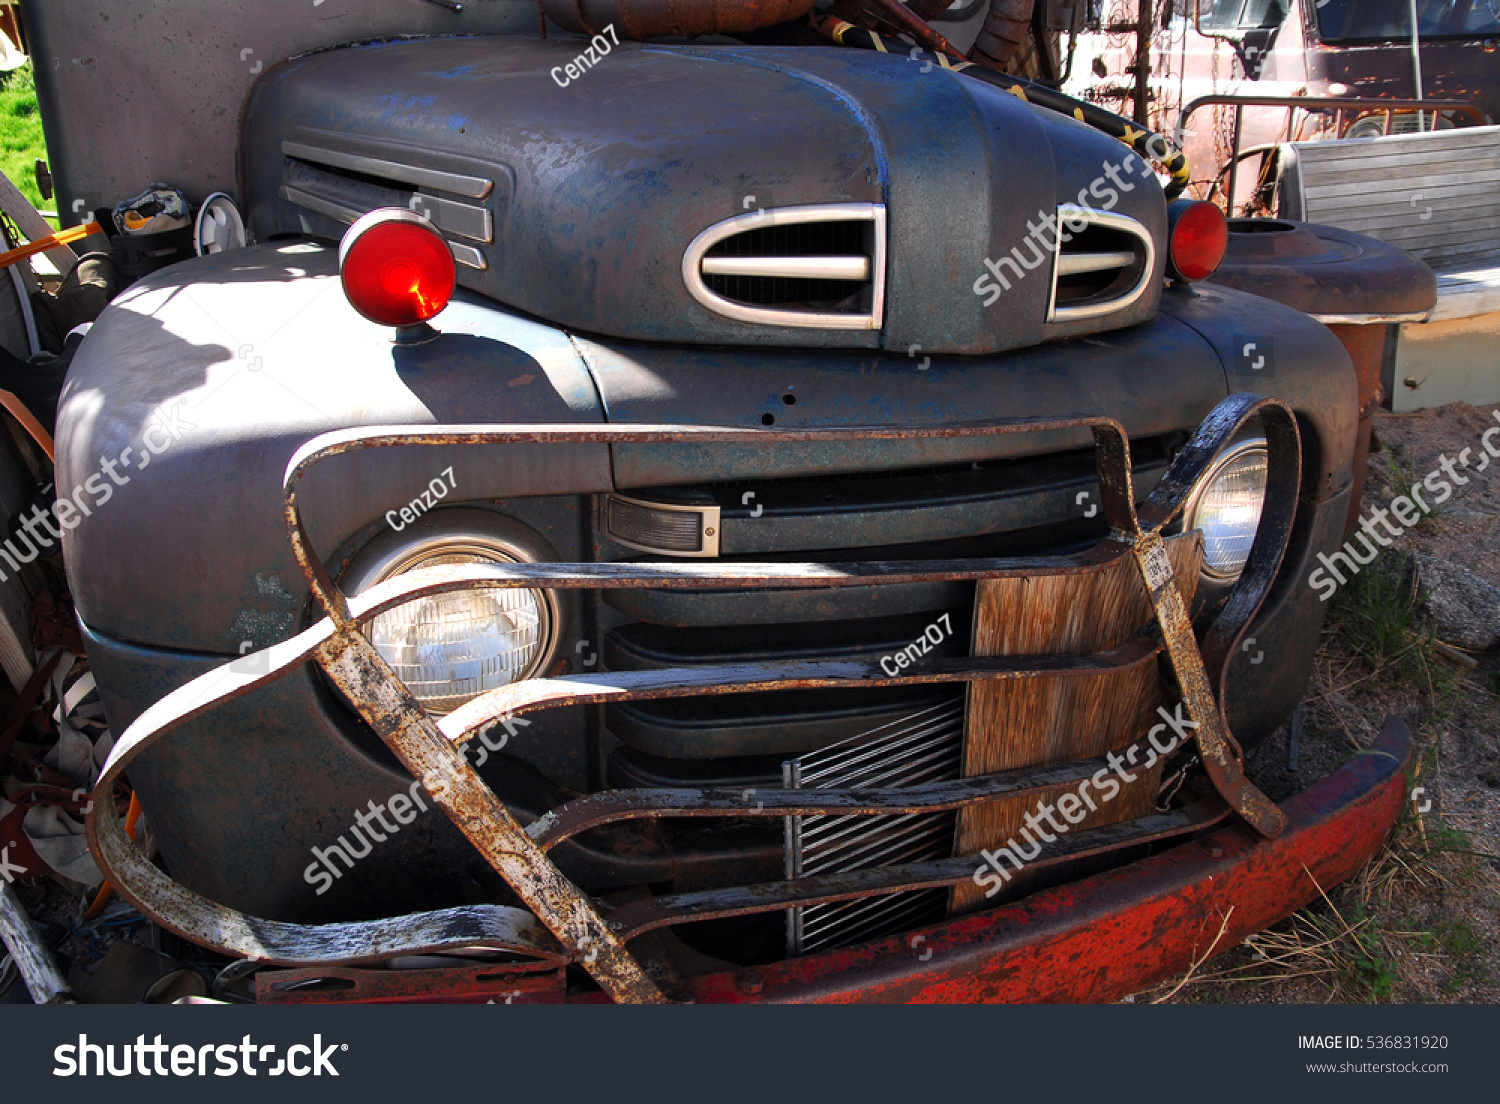 Antique American Cars Not Working Parked Stock Photo (Edit Now ...